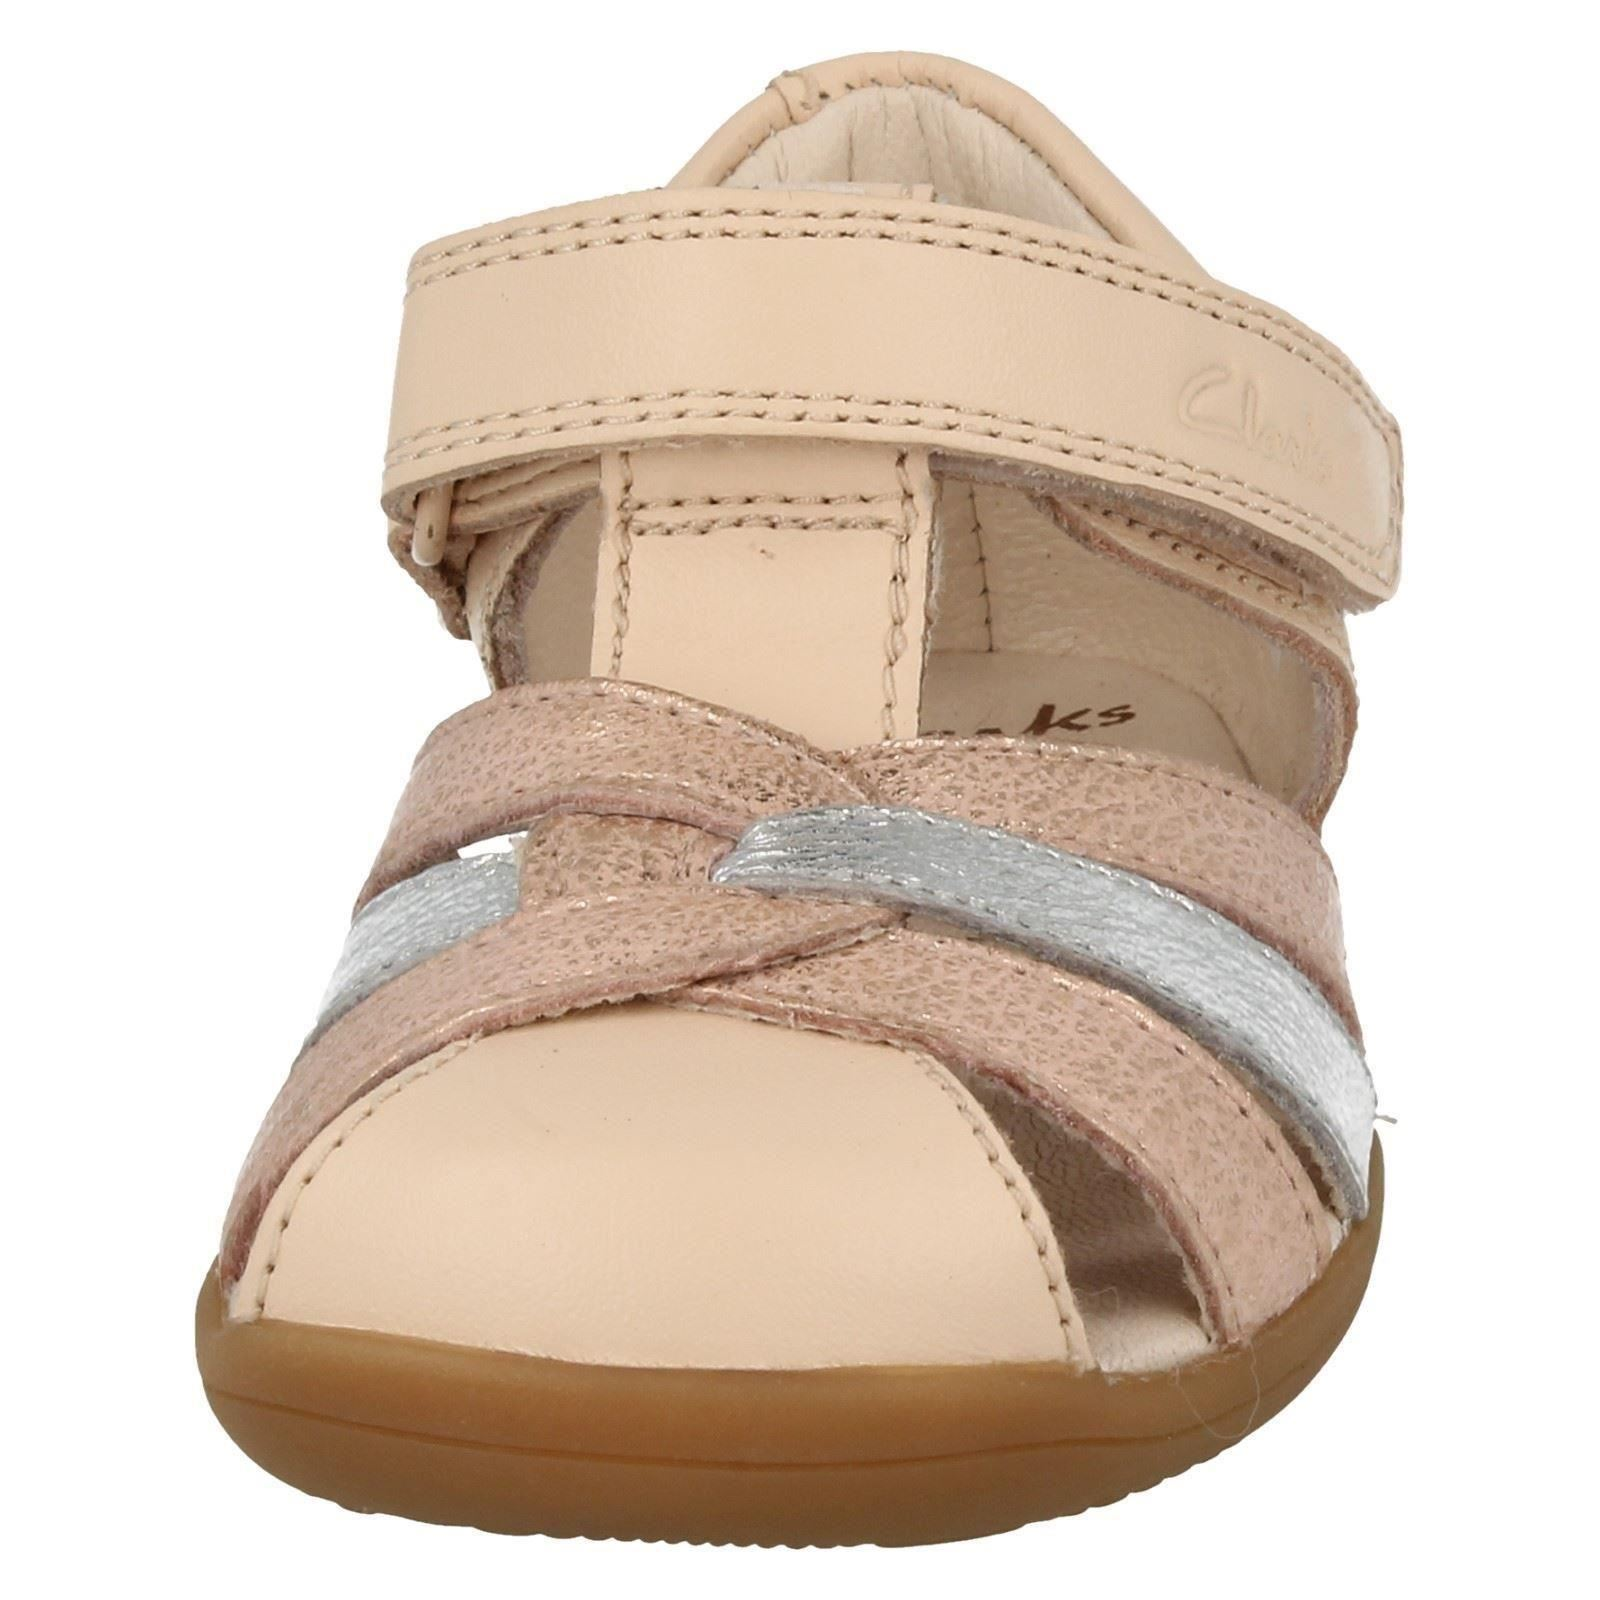 35b7780958b Girls Clarks First Shoes Closed Toe Summer Sandals  Softly Mae